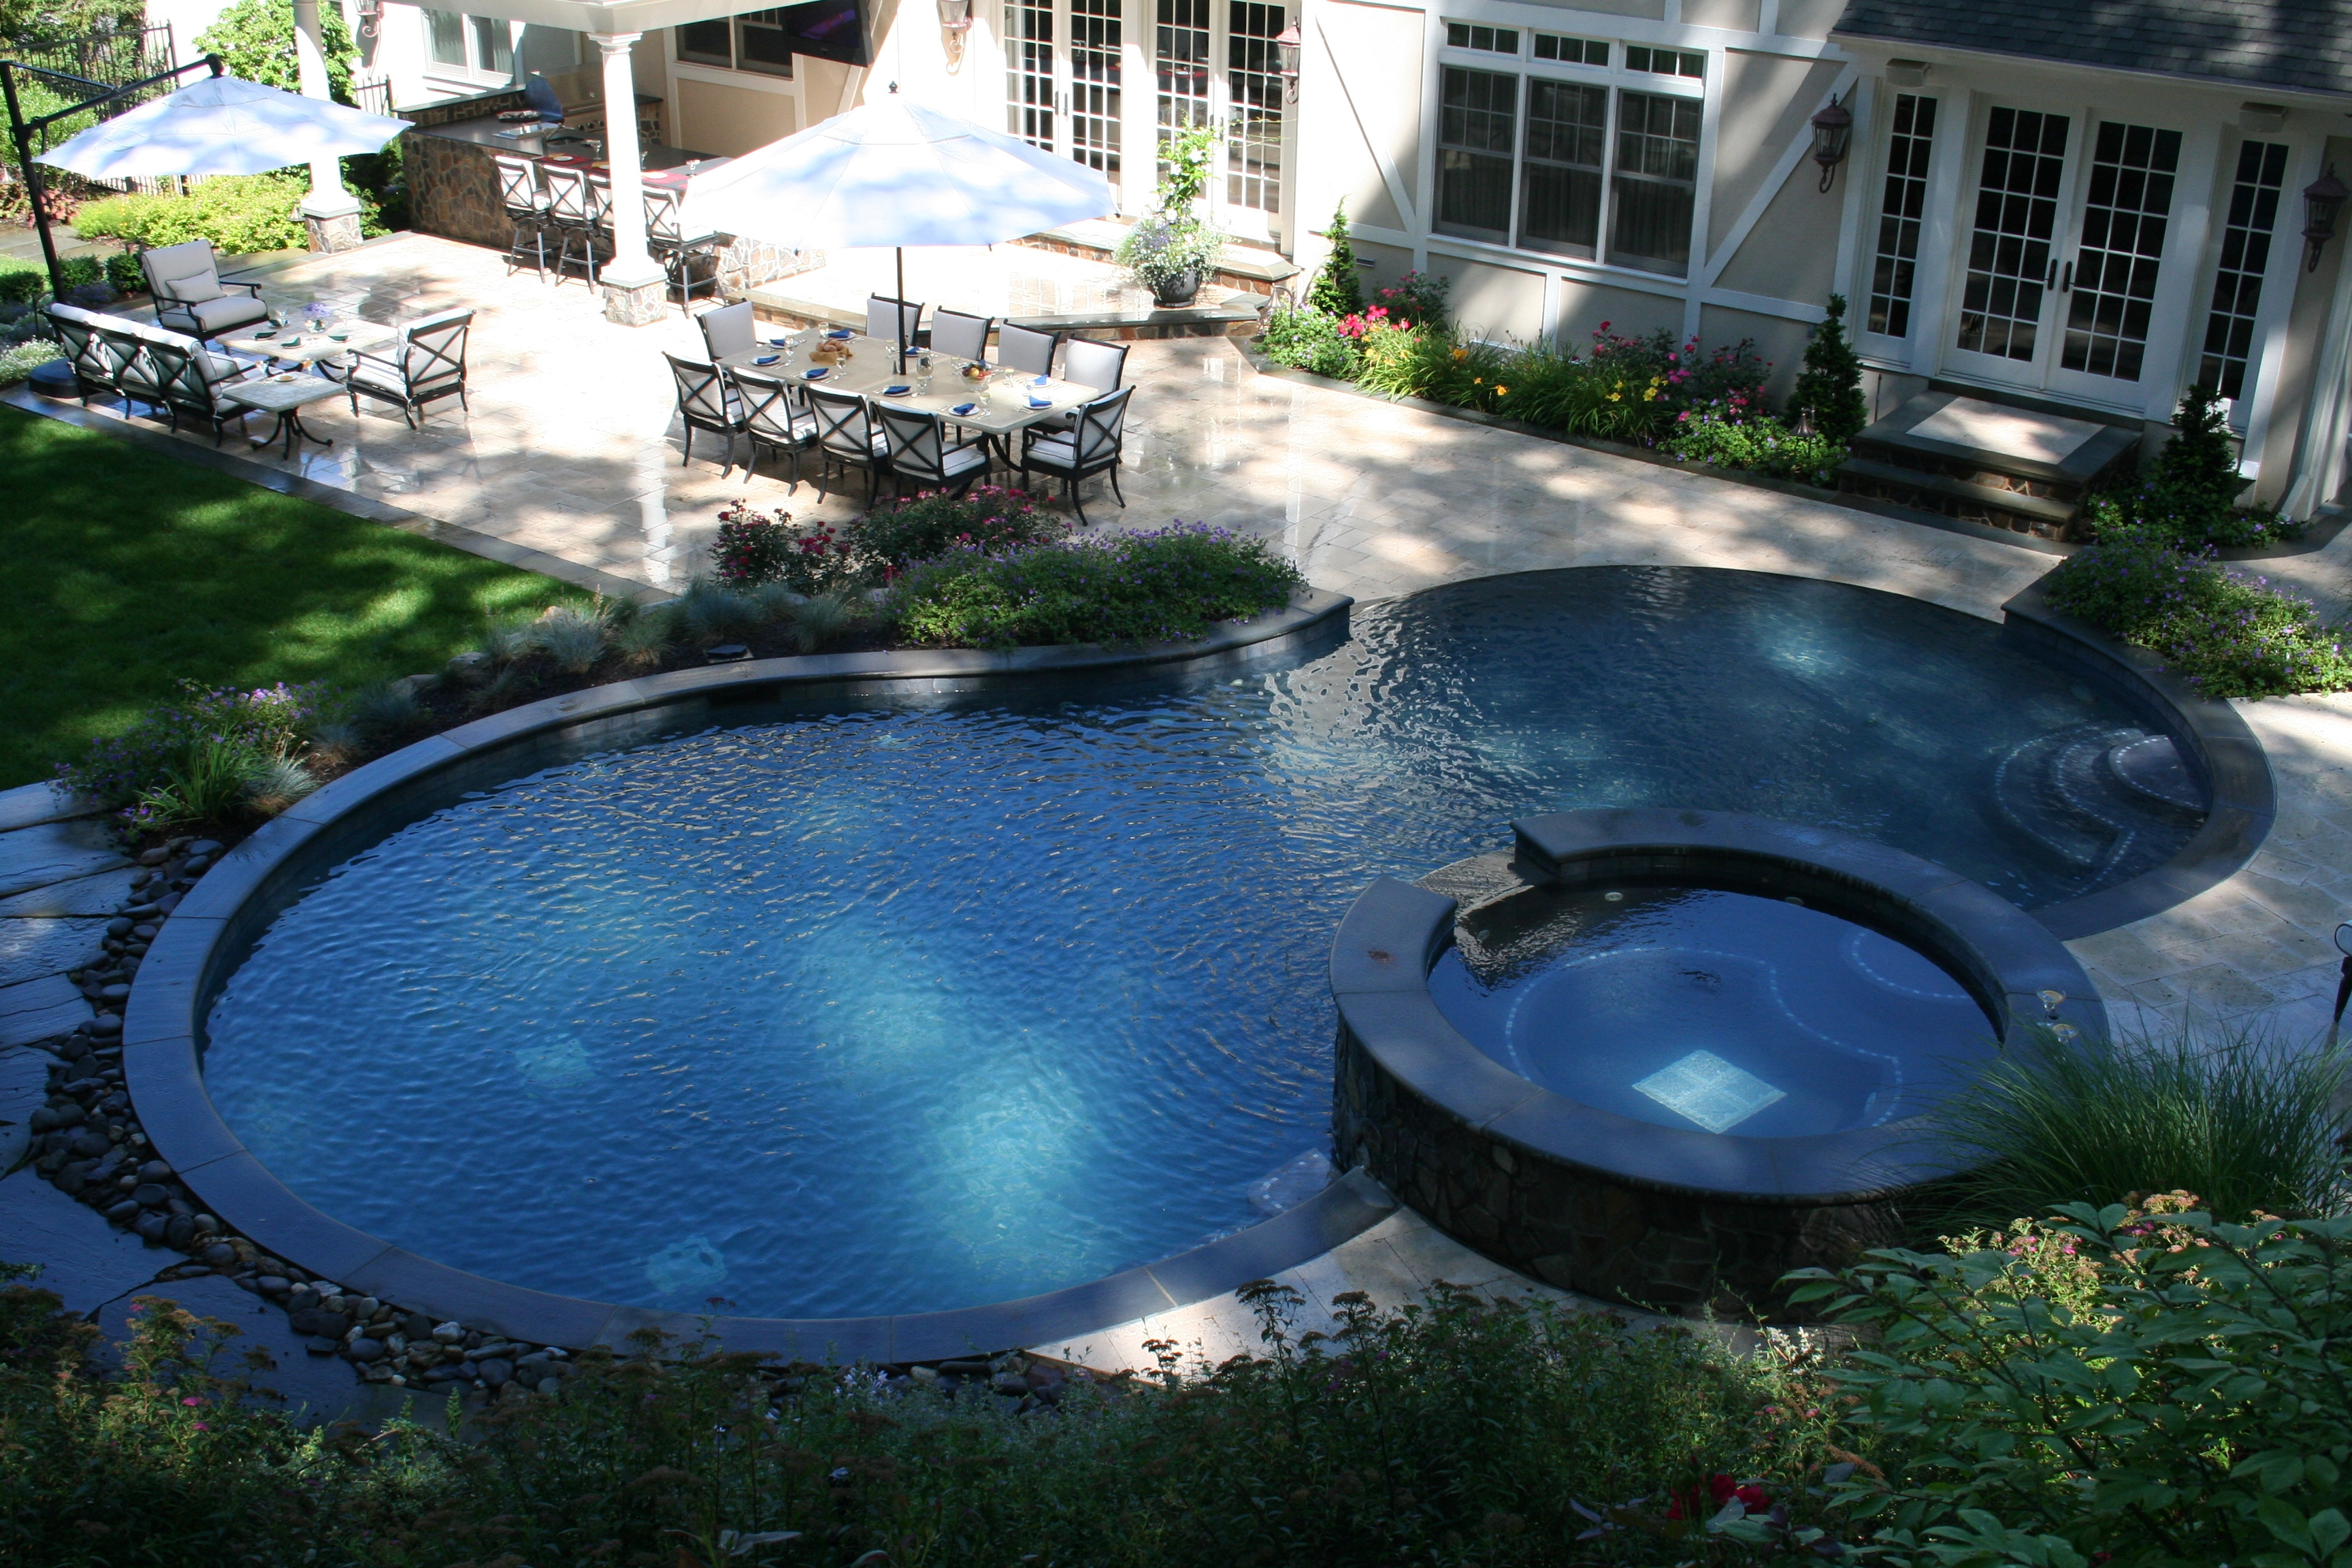 Paco pools and spas at 784 merrick rd baldwin ny on fave for Pool and spa show wa